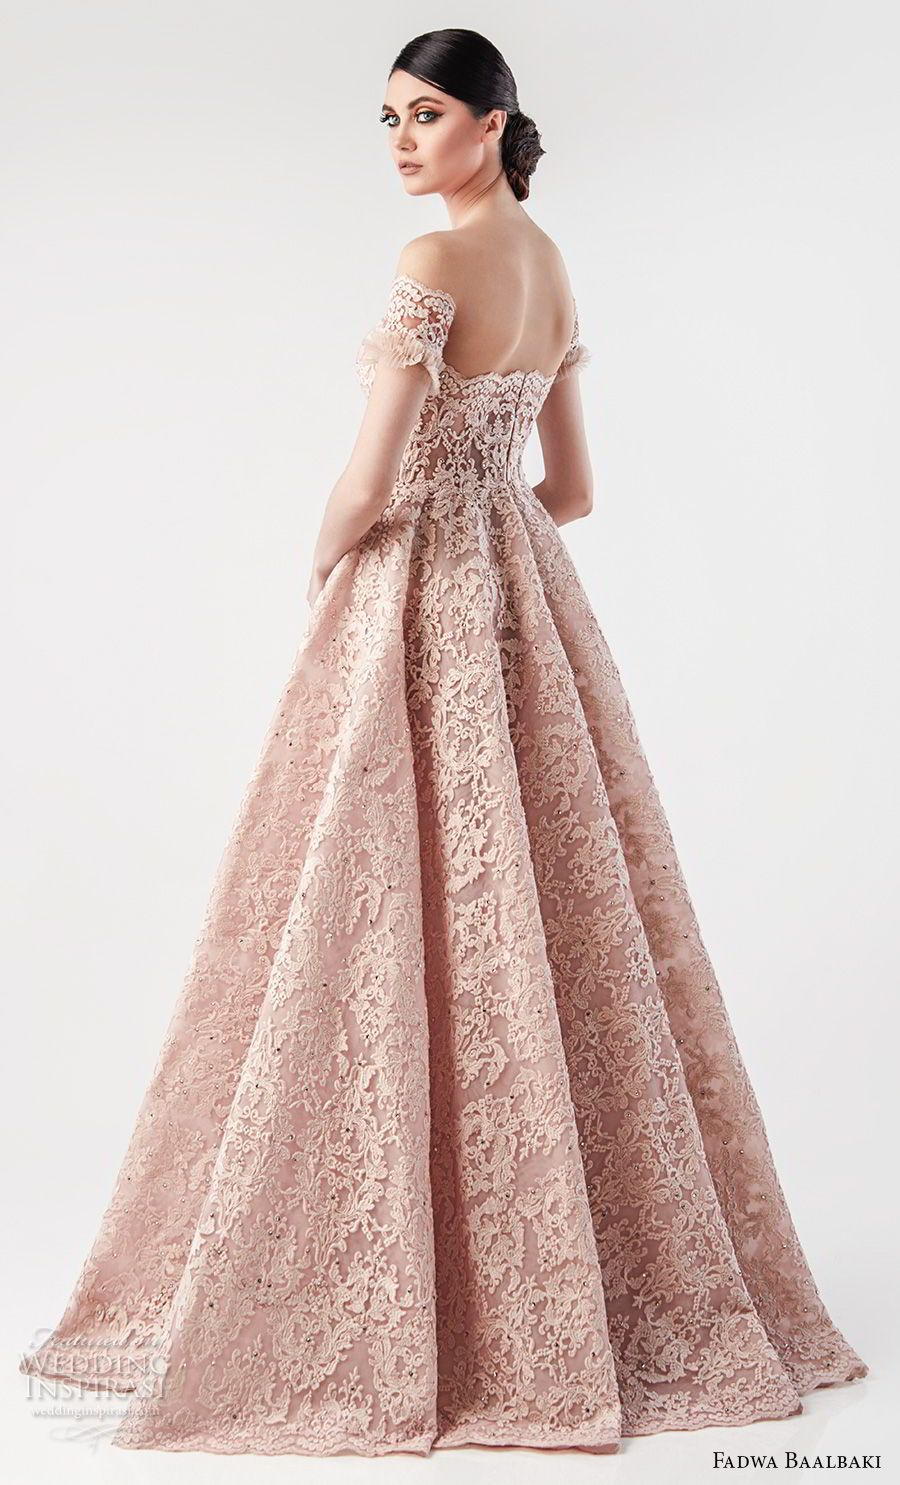 Fadwa baalbaki spring couture dresses fancy dresses